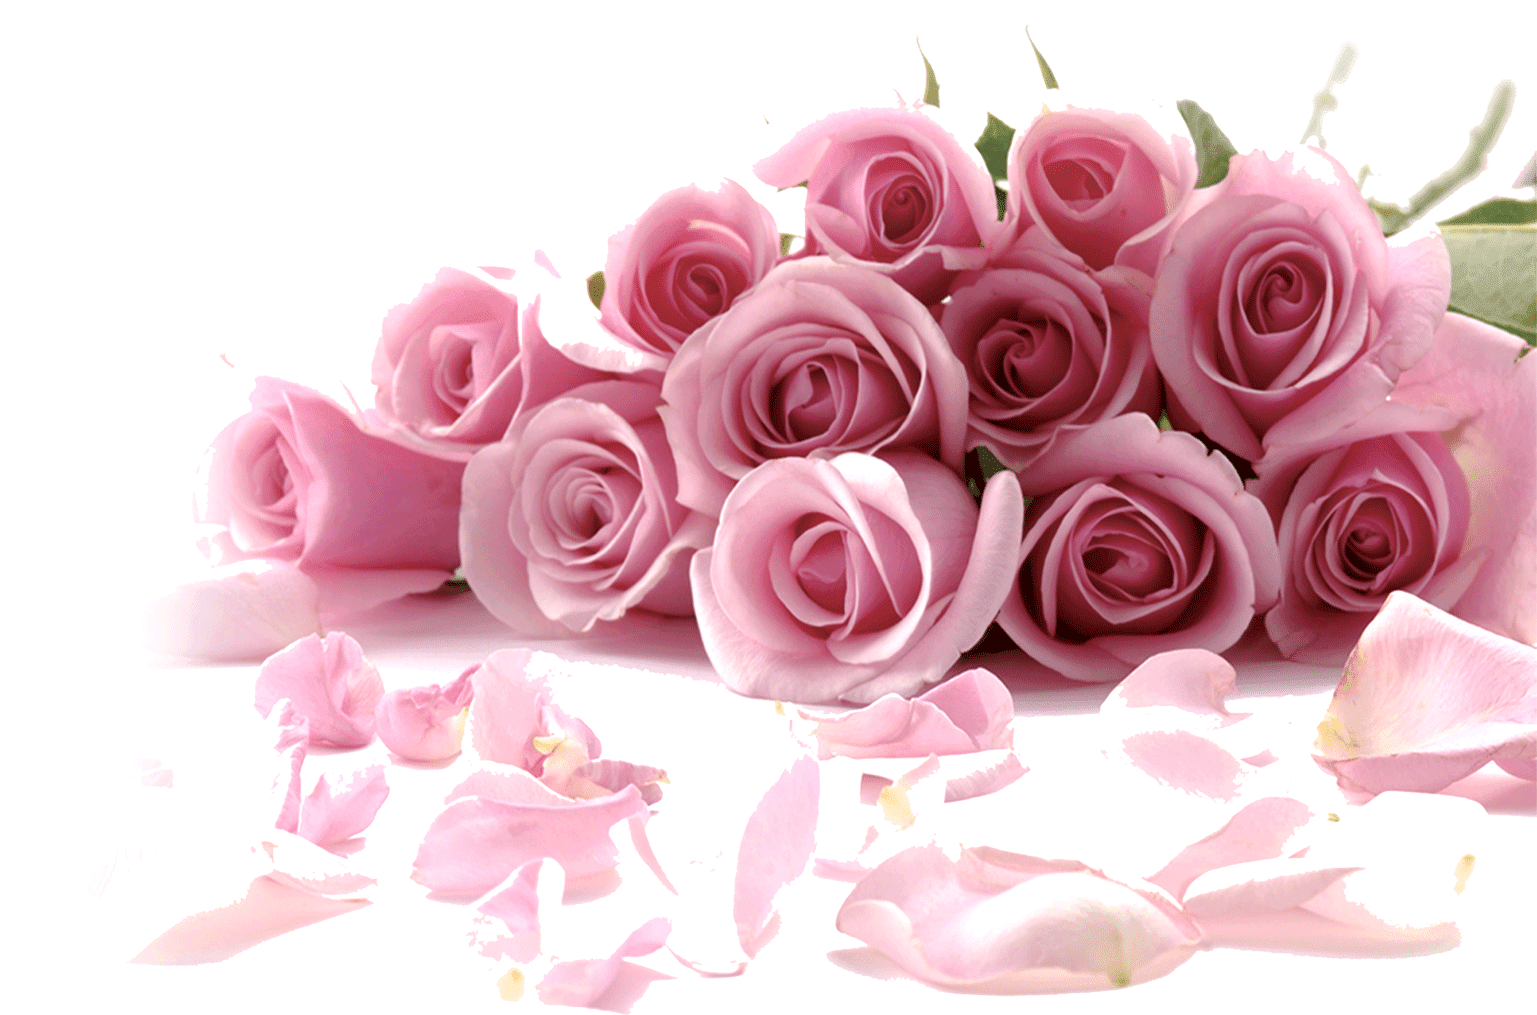 Pink watercolor roses png. Painting painted